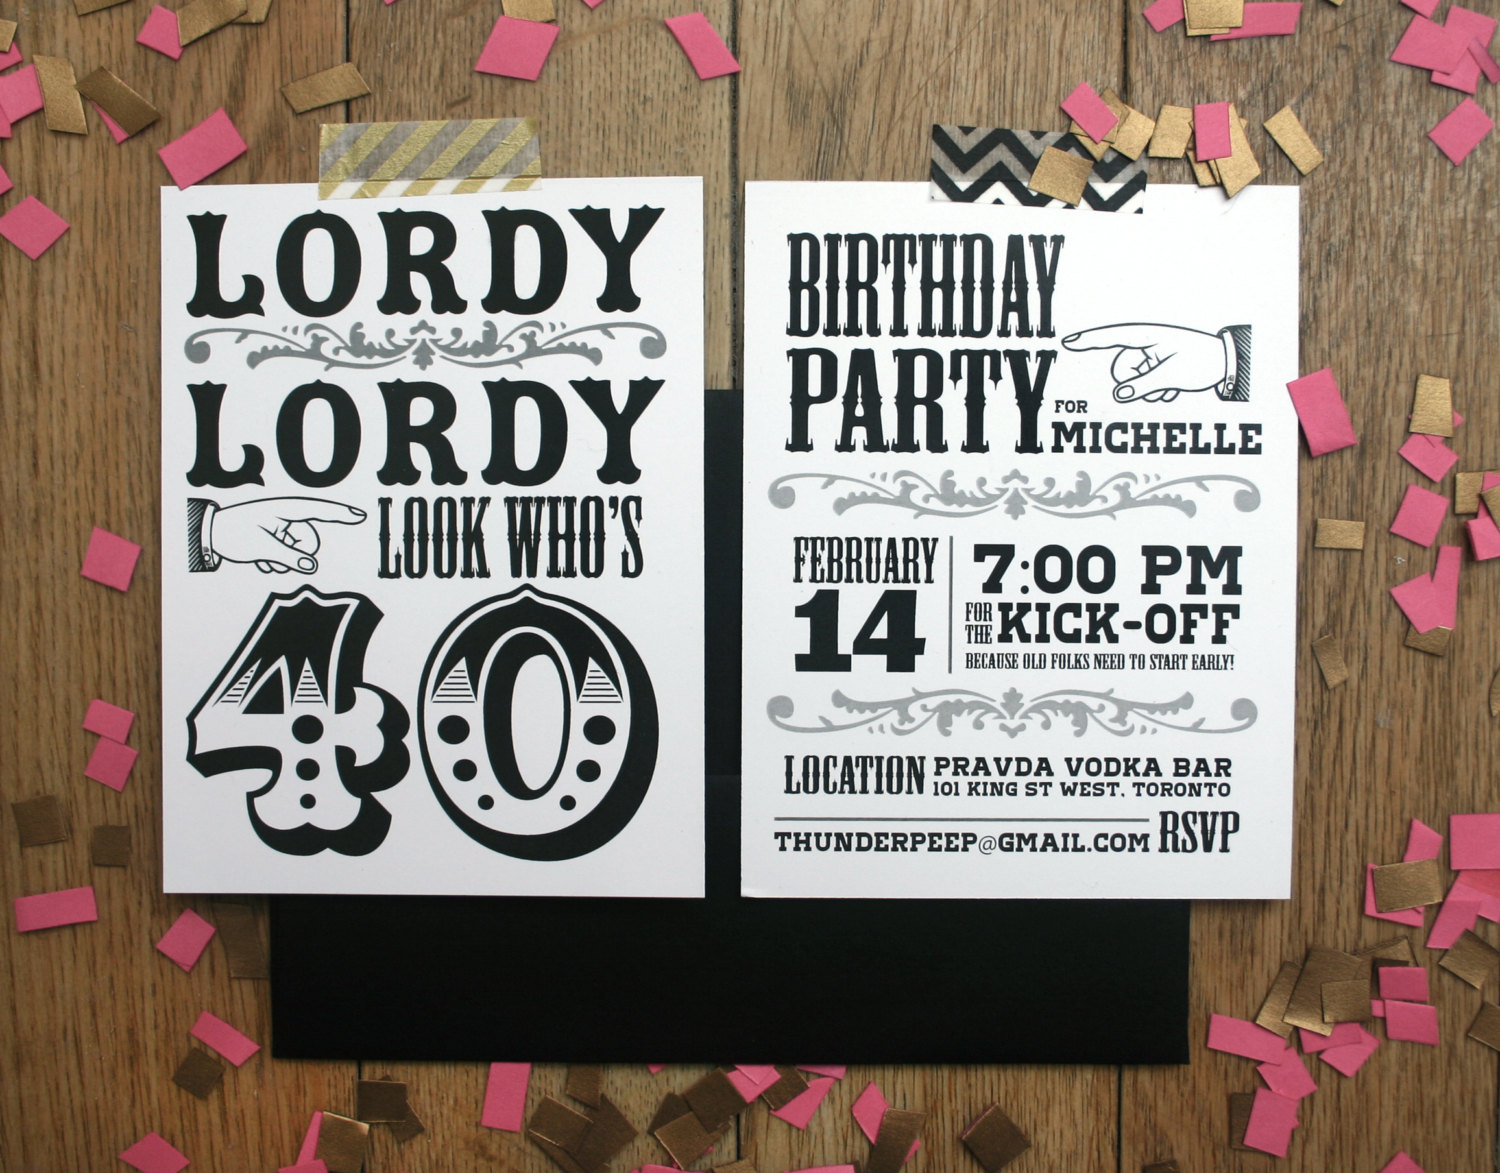 free birthday party invitation templates uk ; free_40th_birthday_party_invitation_templates_uk_6